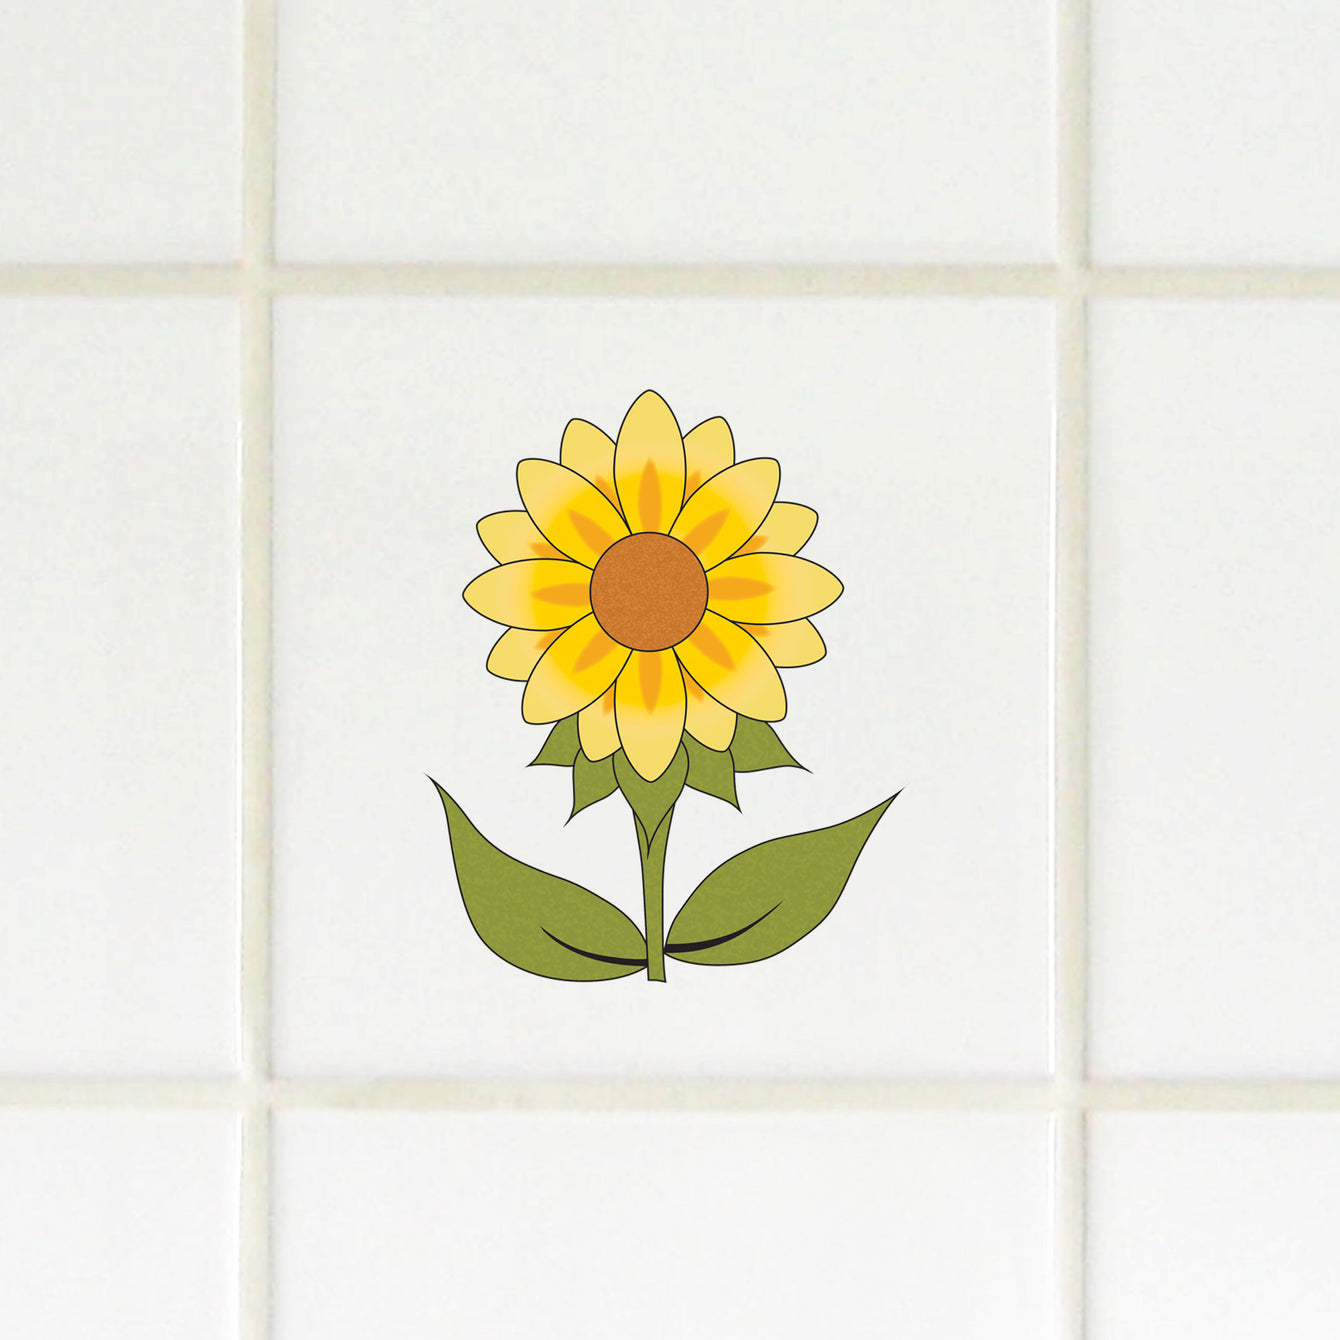 Water Slide Tile Transfers Inset Sunflower Bee - Buy It Better